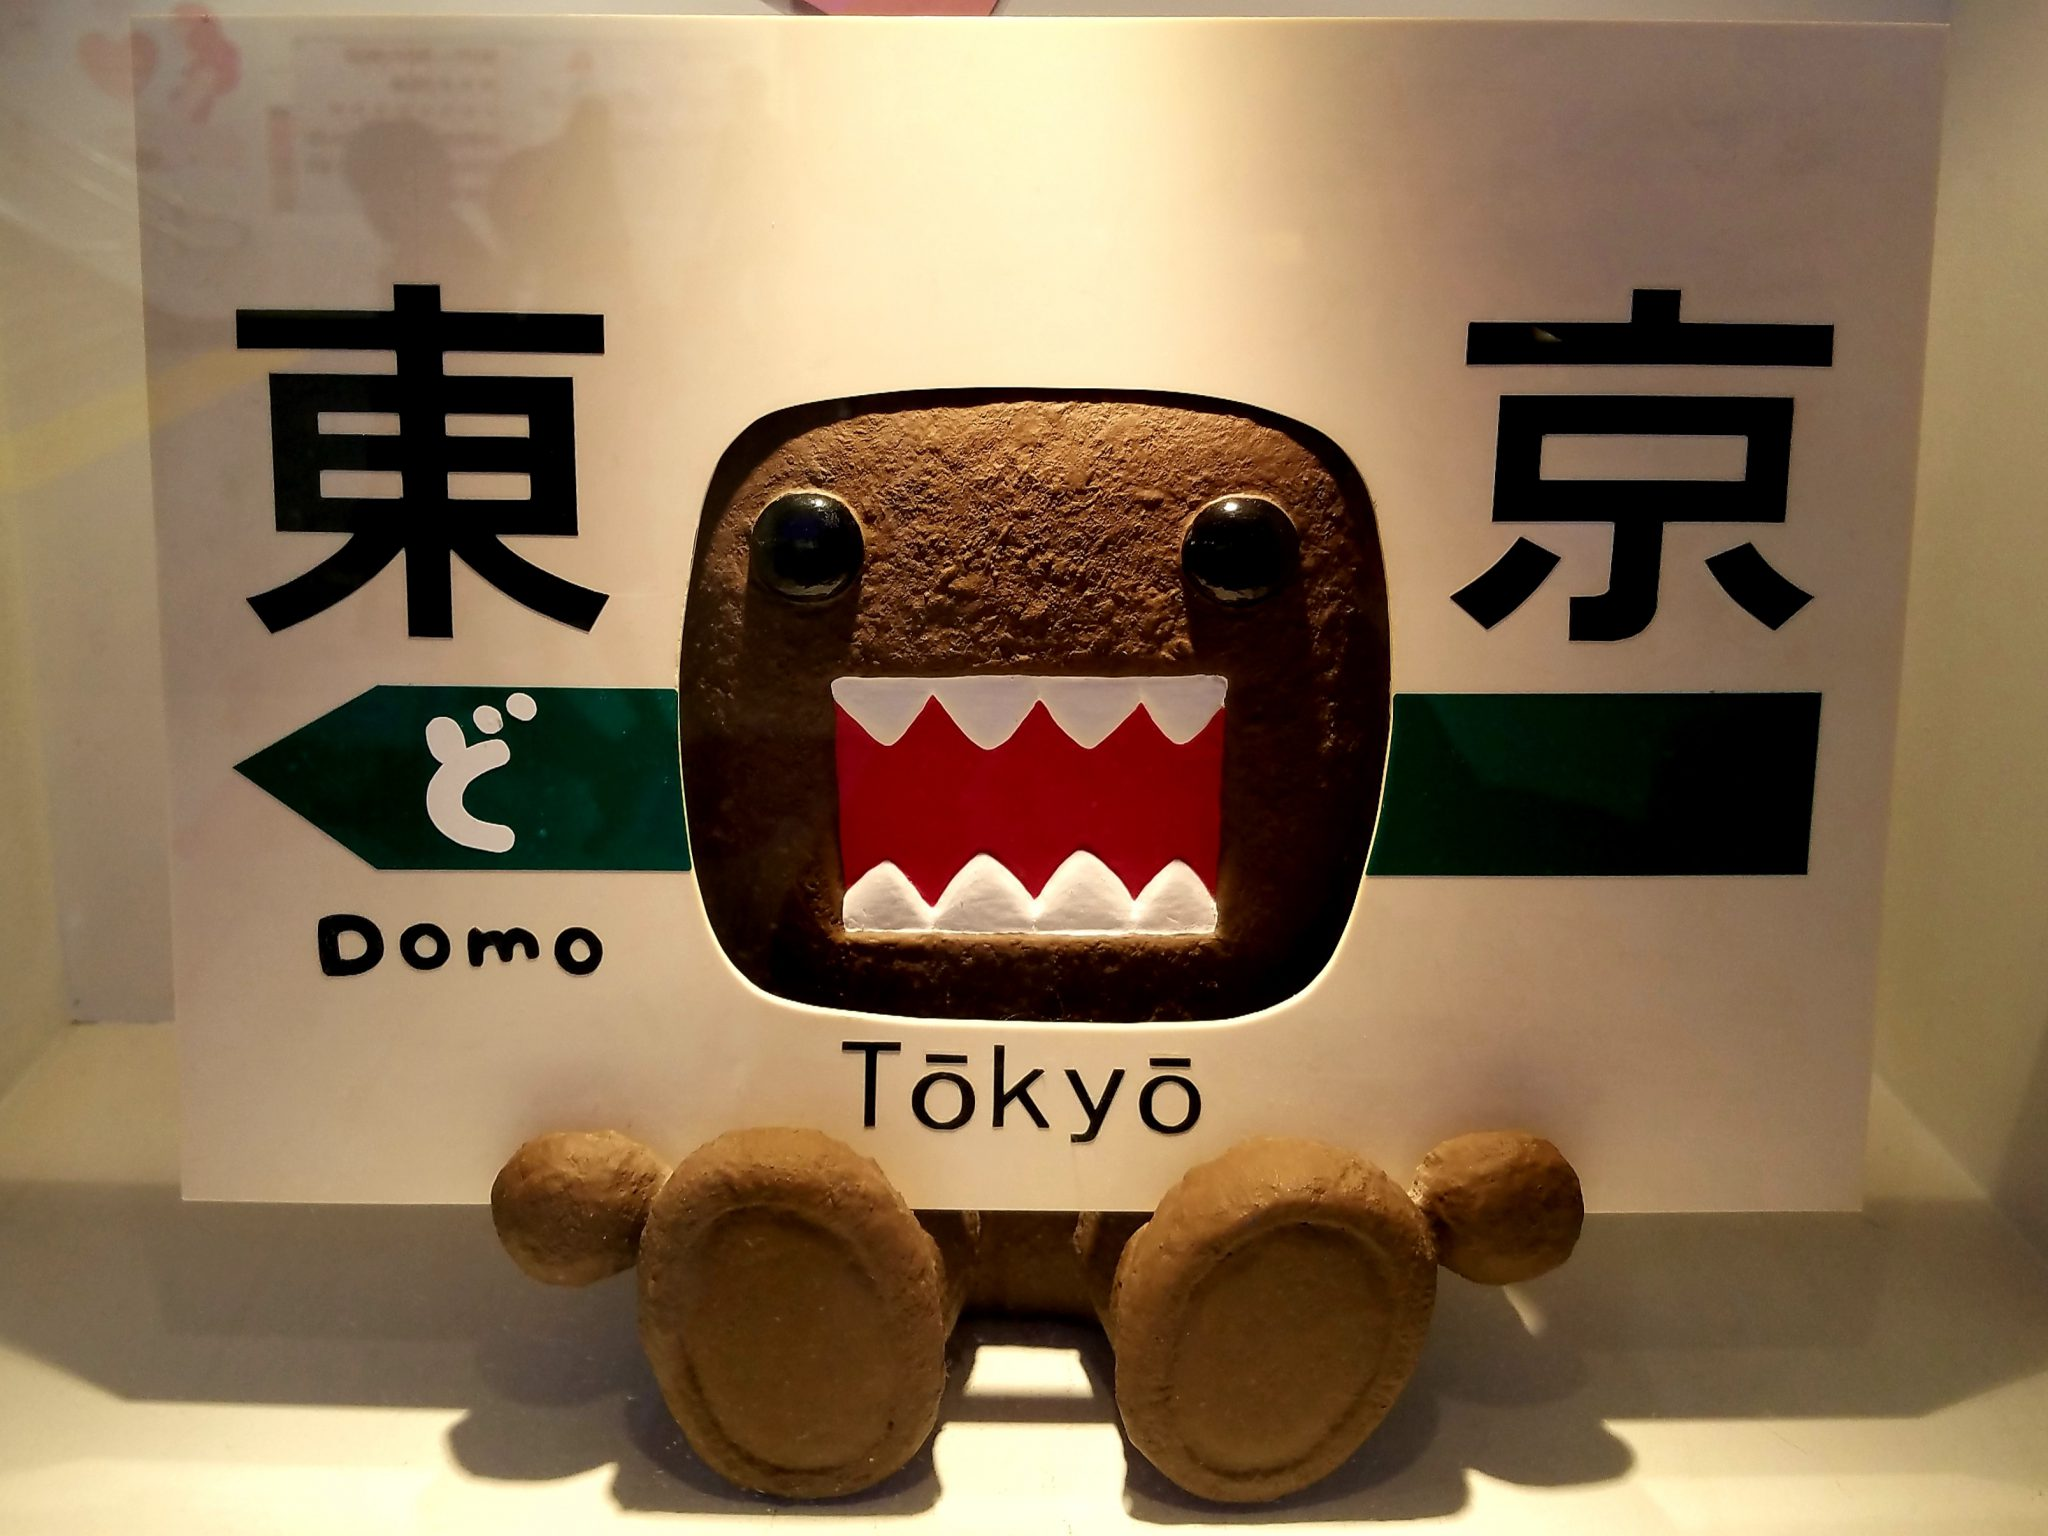 All roads lead to Domo: Domo-kun at Tokyo Station